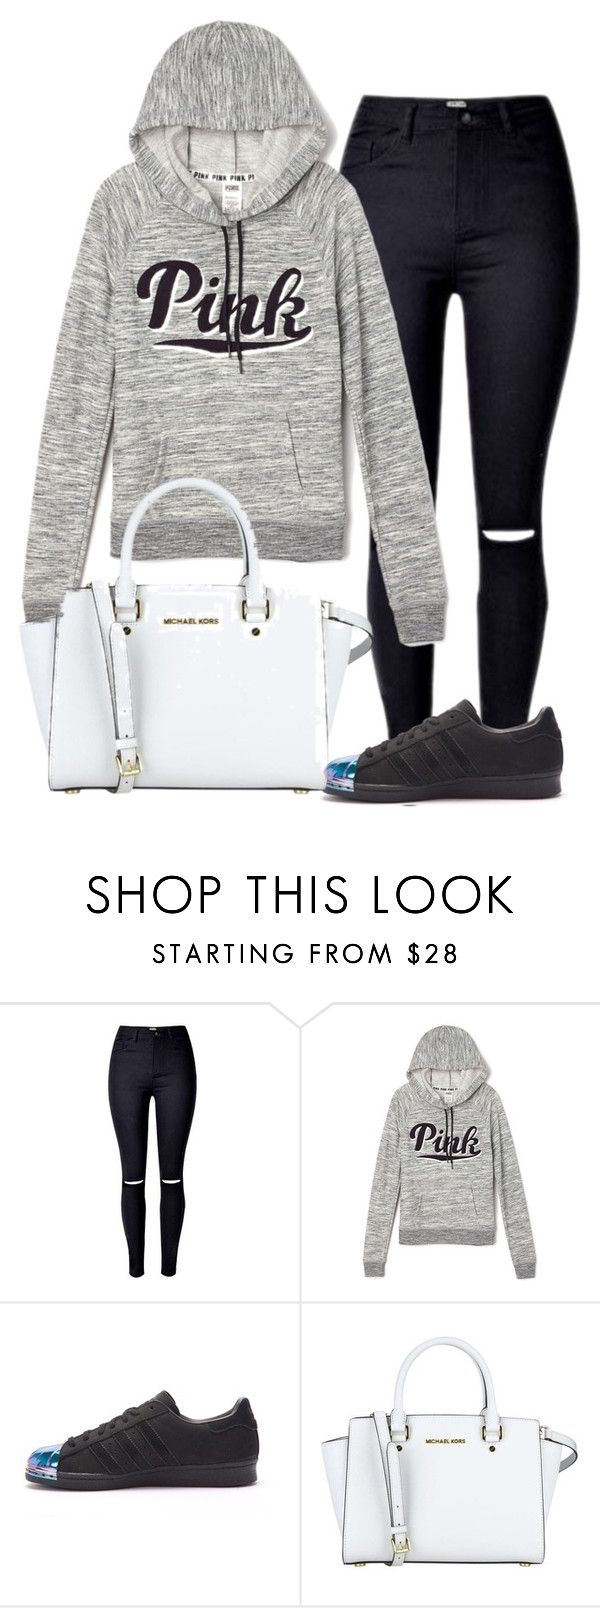 """""""MONDAY LOOK ! 😭"""" by fashiontimer ❤ liked on Polyvore featuring Victoria's Secret, adidas and MICHAEL Michael Kors"""